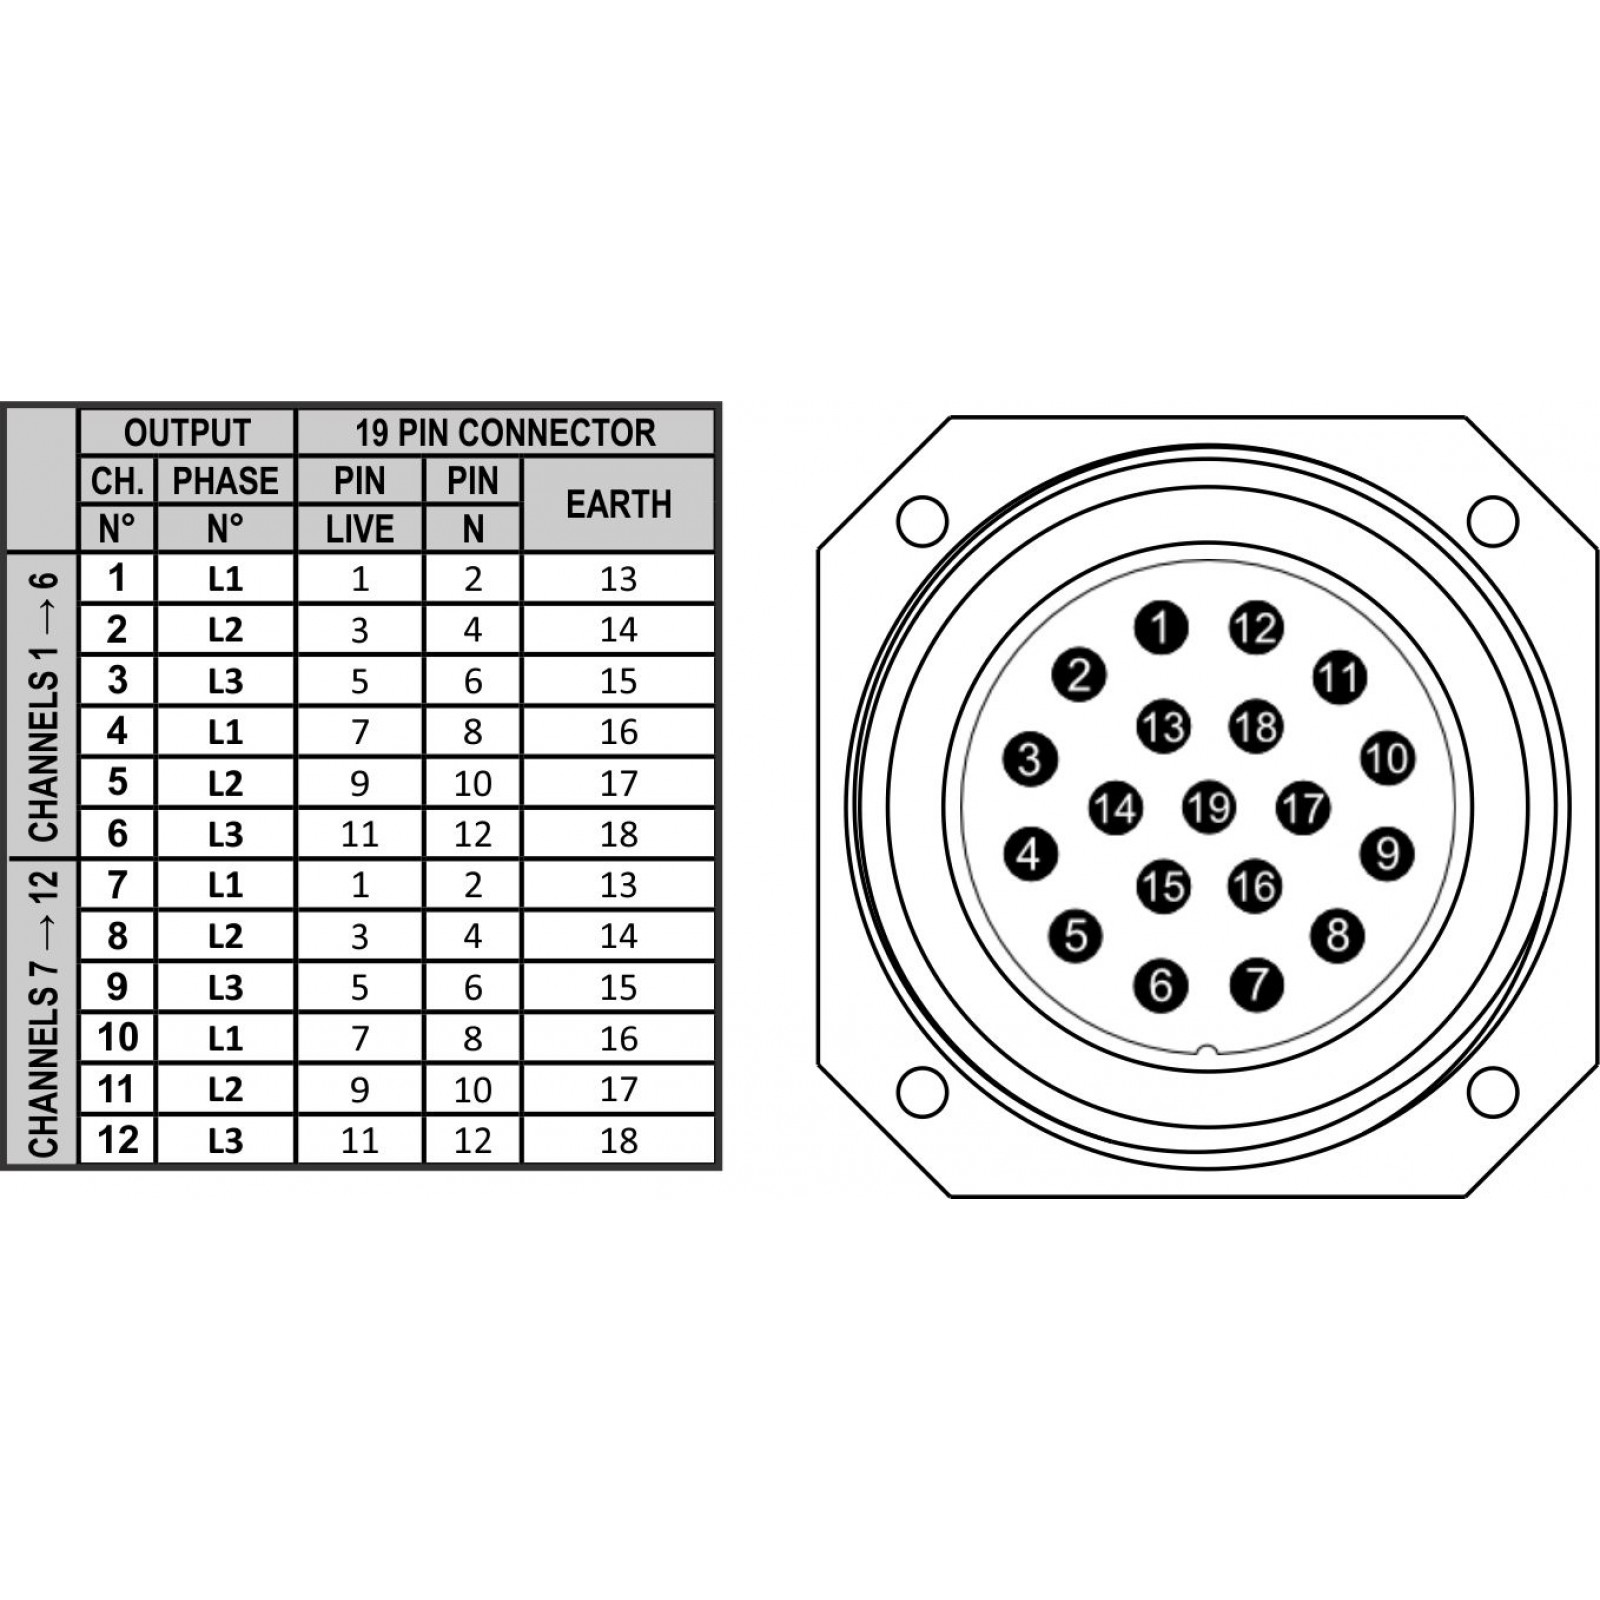 for ge oven wiring diagram jbp26gv3ad wiring libraryFor Ge Oven Wiring Diagram Jbp26gv3ad #15